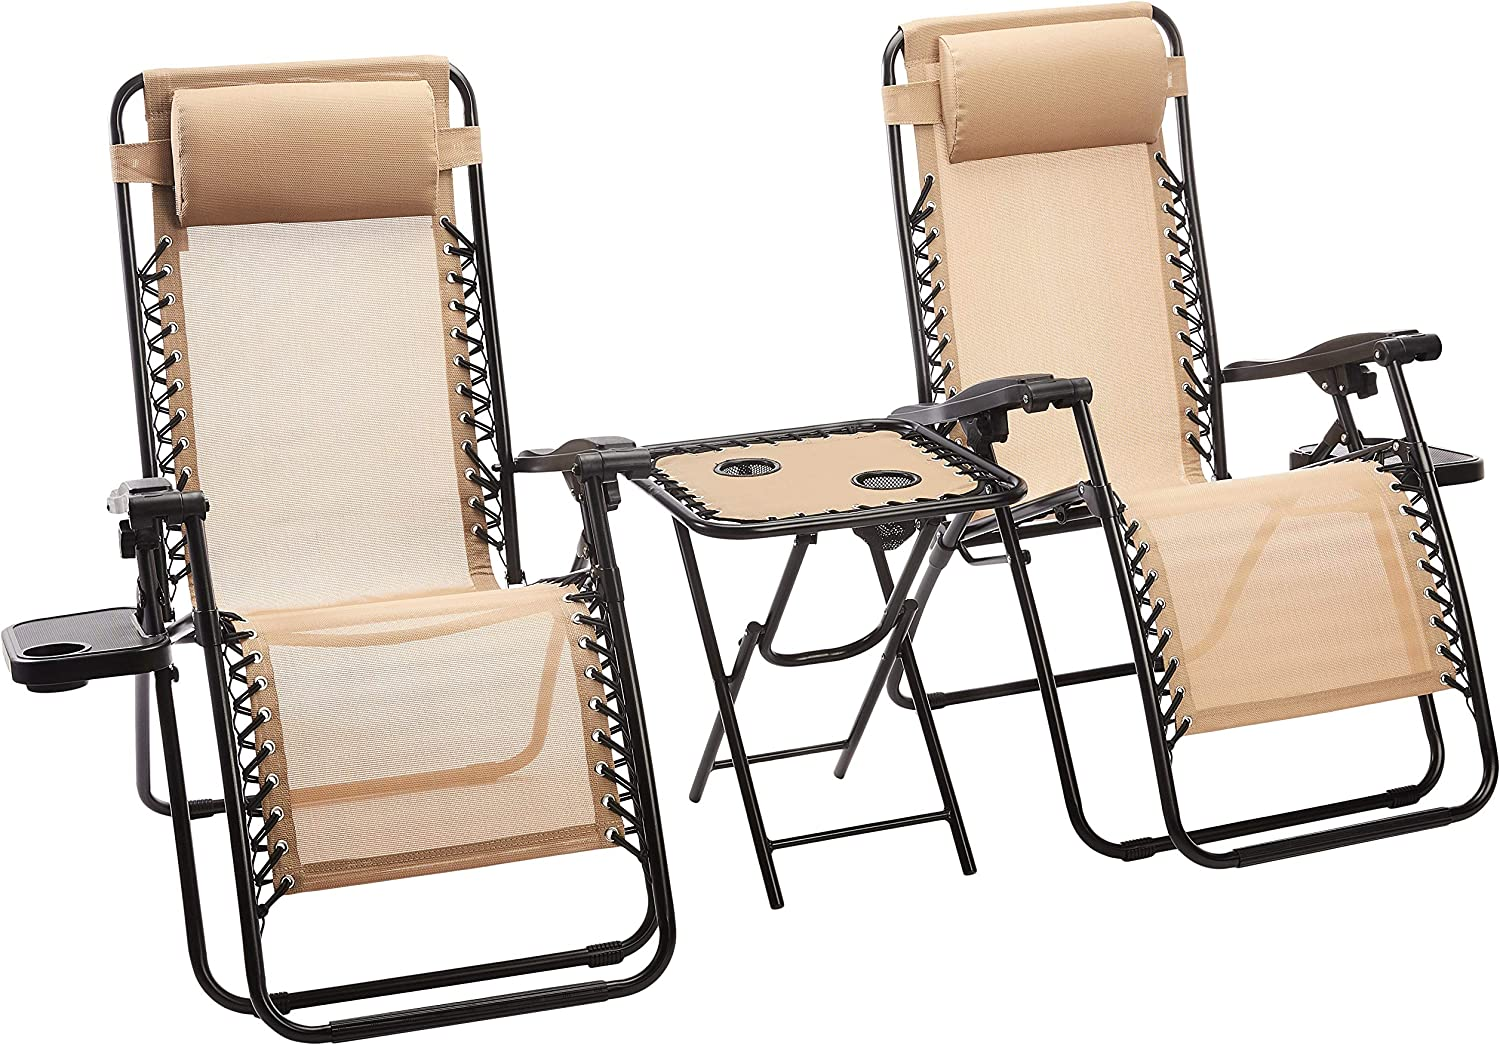 Set of 2 zero gravity chair with side table.